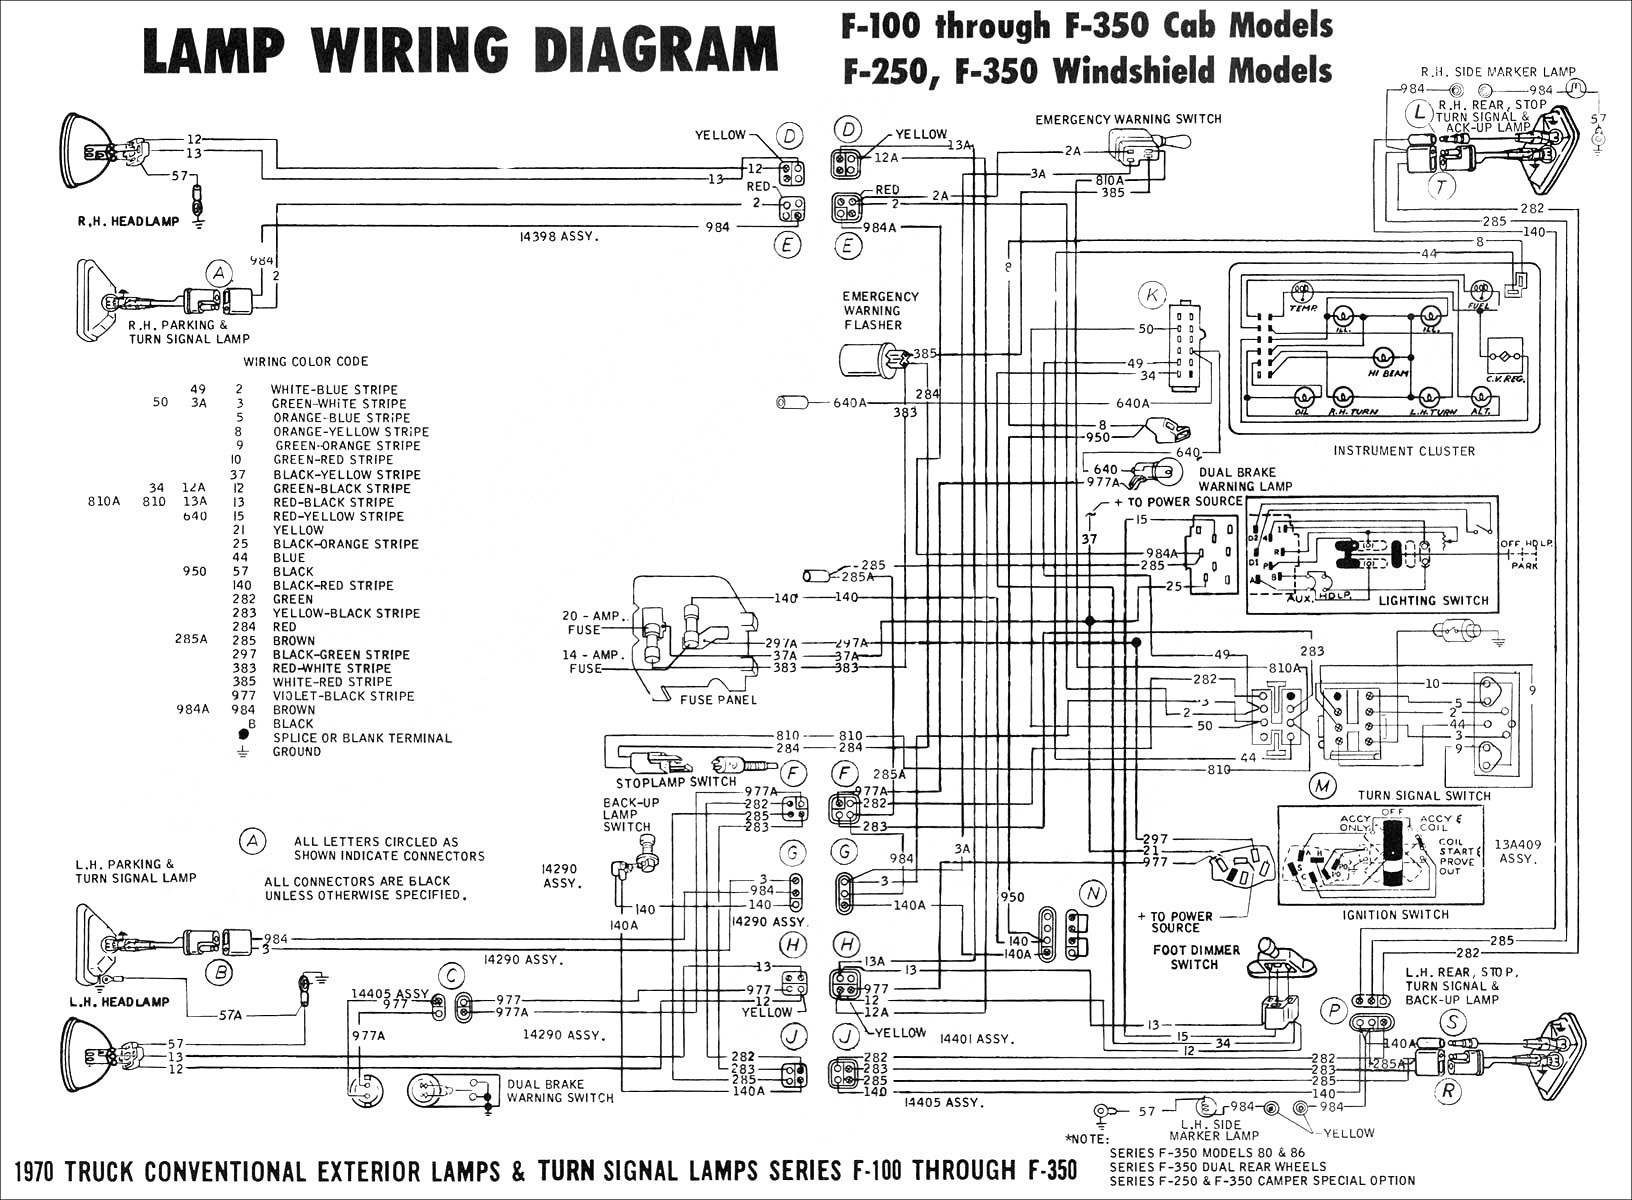 Trailer Wiring Diagram Toyota Ta a Wiring Diagram Simple Wiring Diagram Toyota Ta A Inspirationa 2000 F250